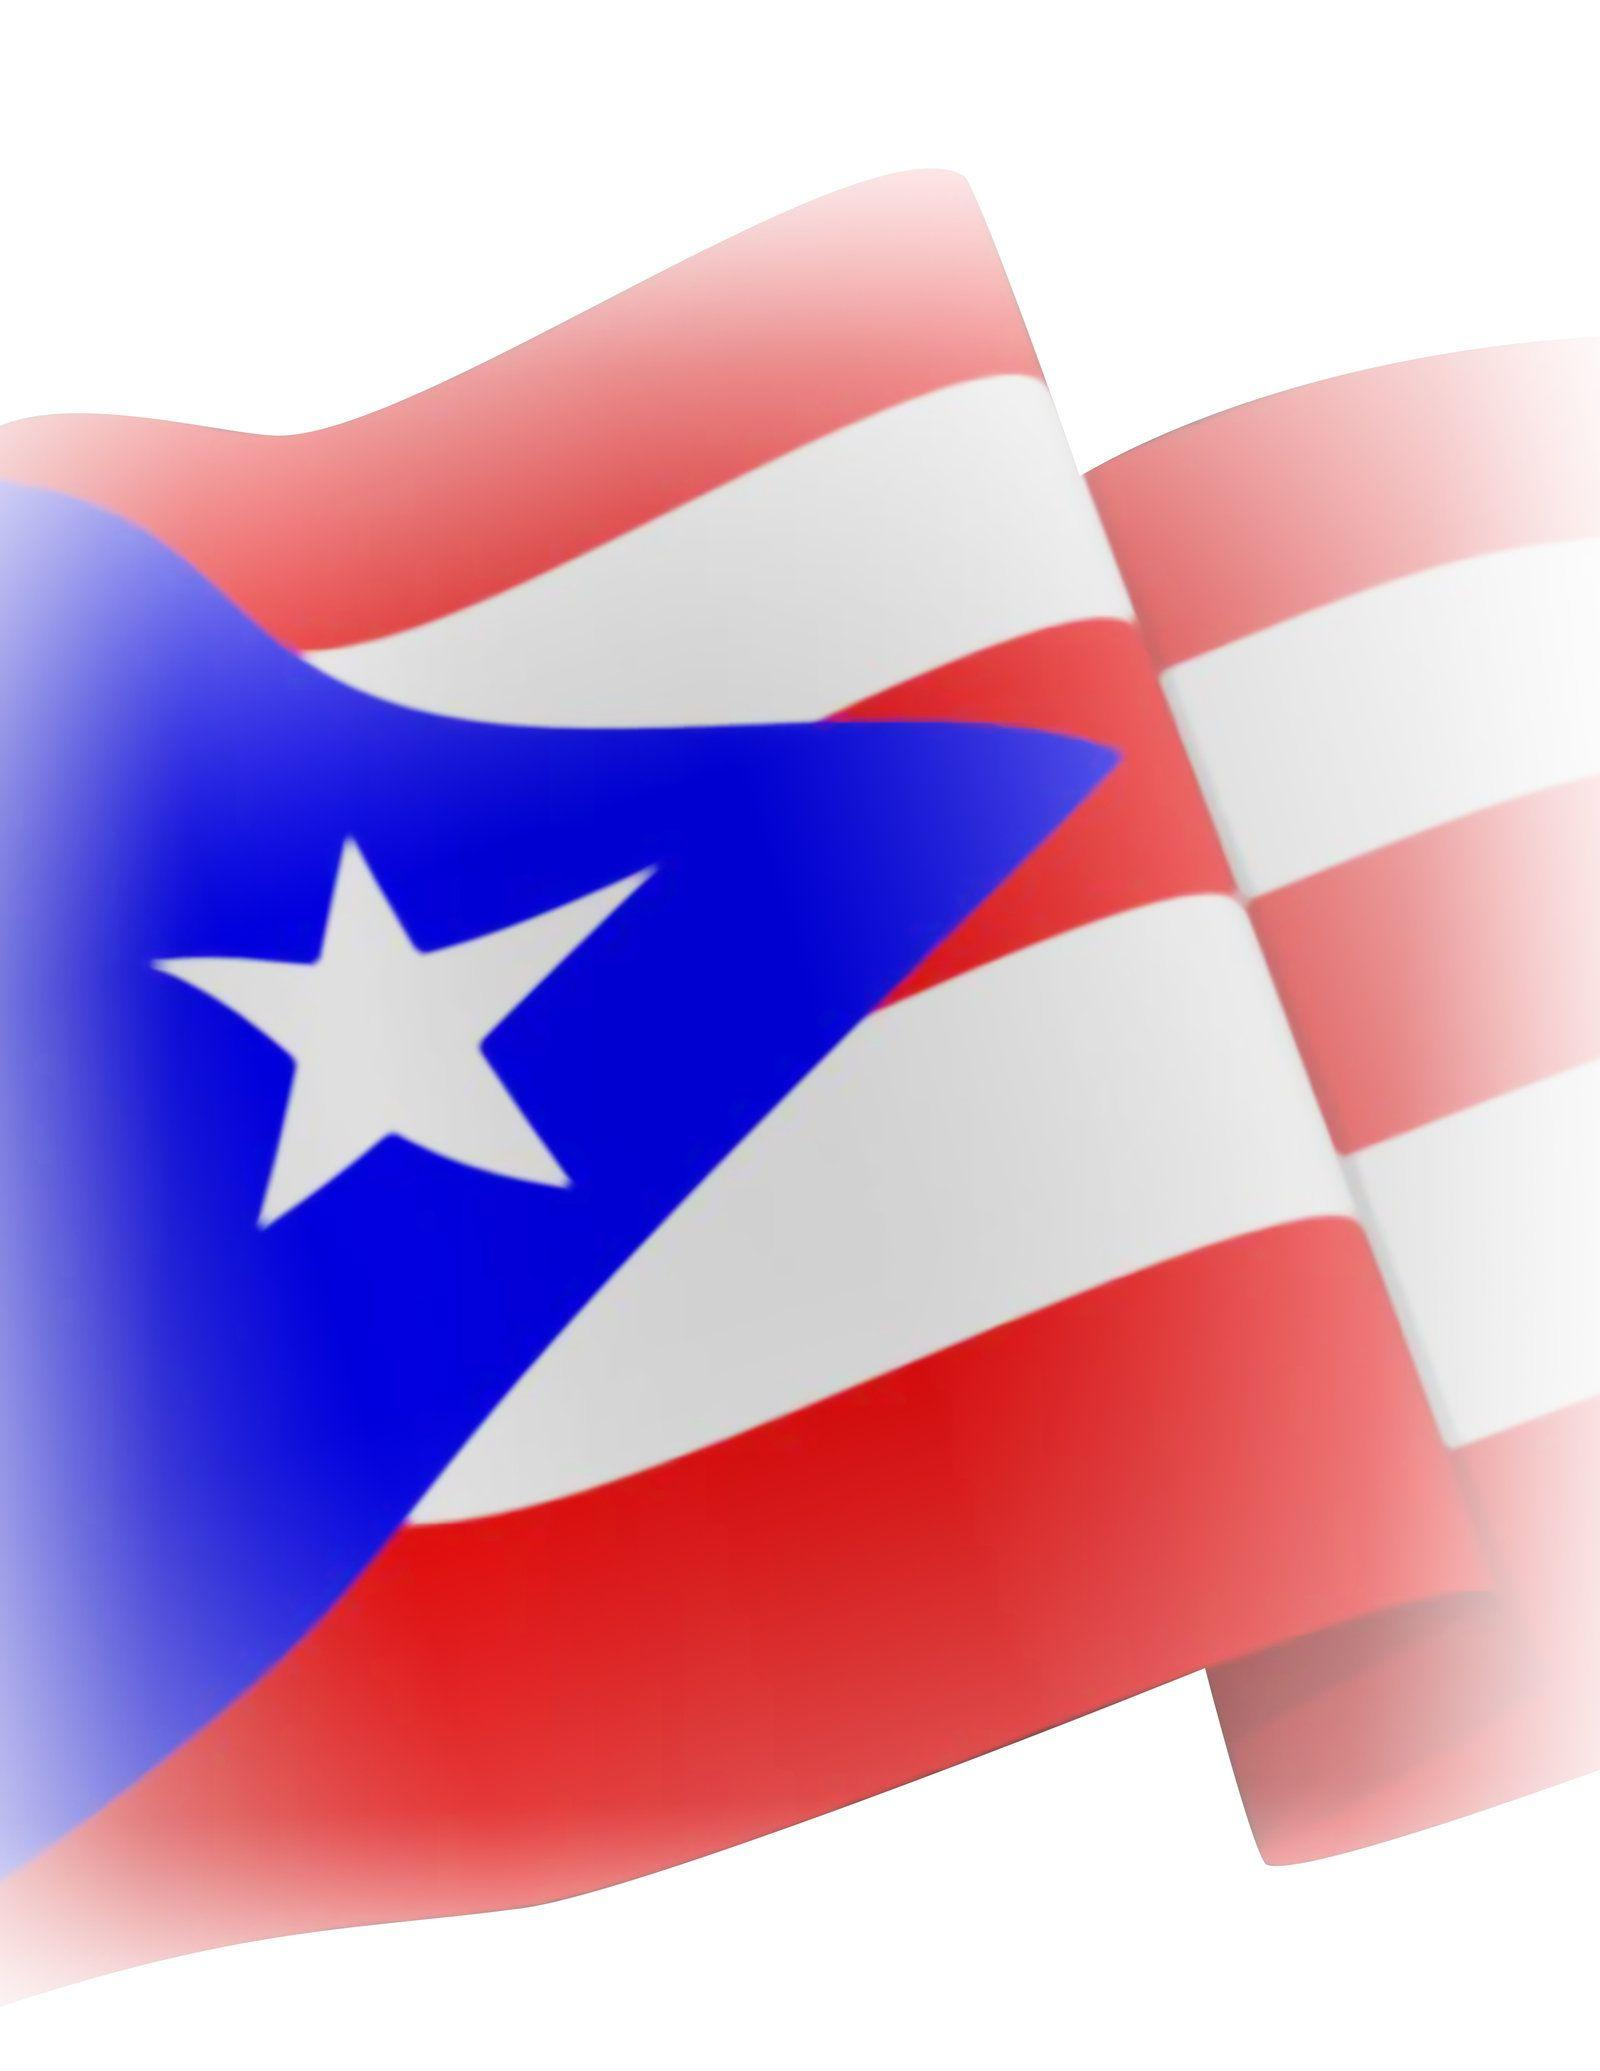 Zendha Black Puerto Rican Flag Wallpaper